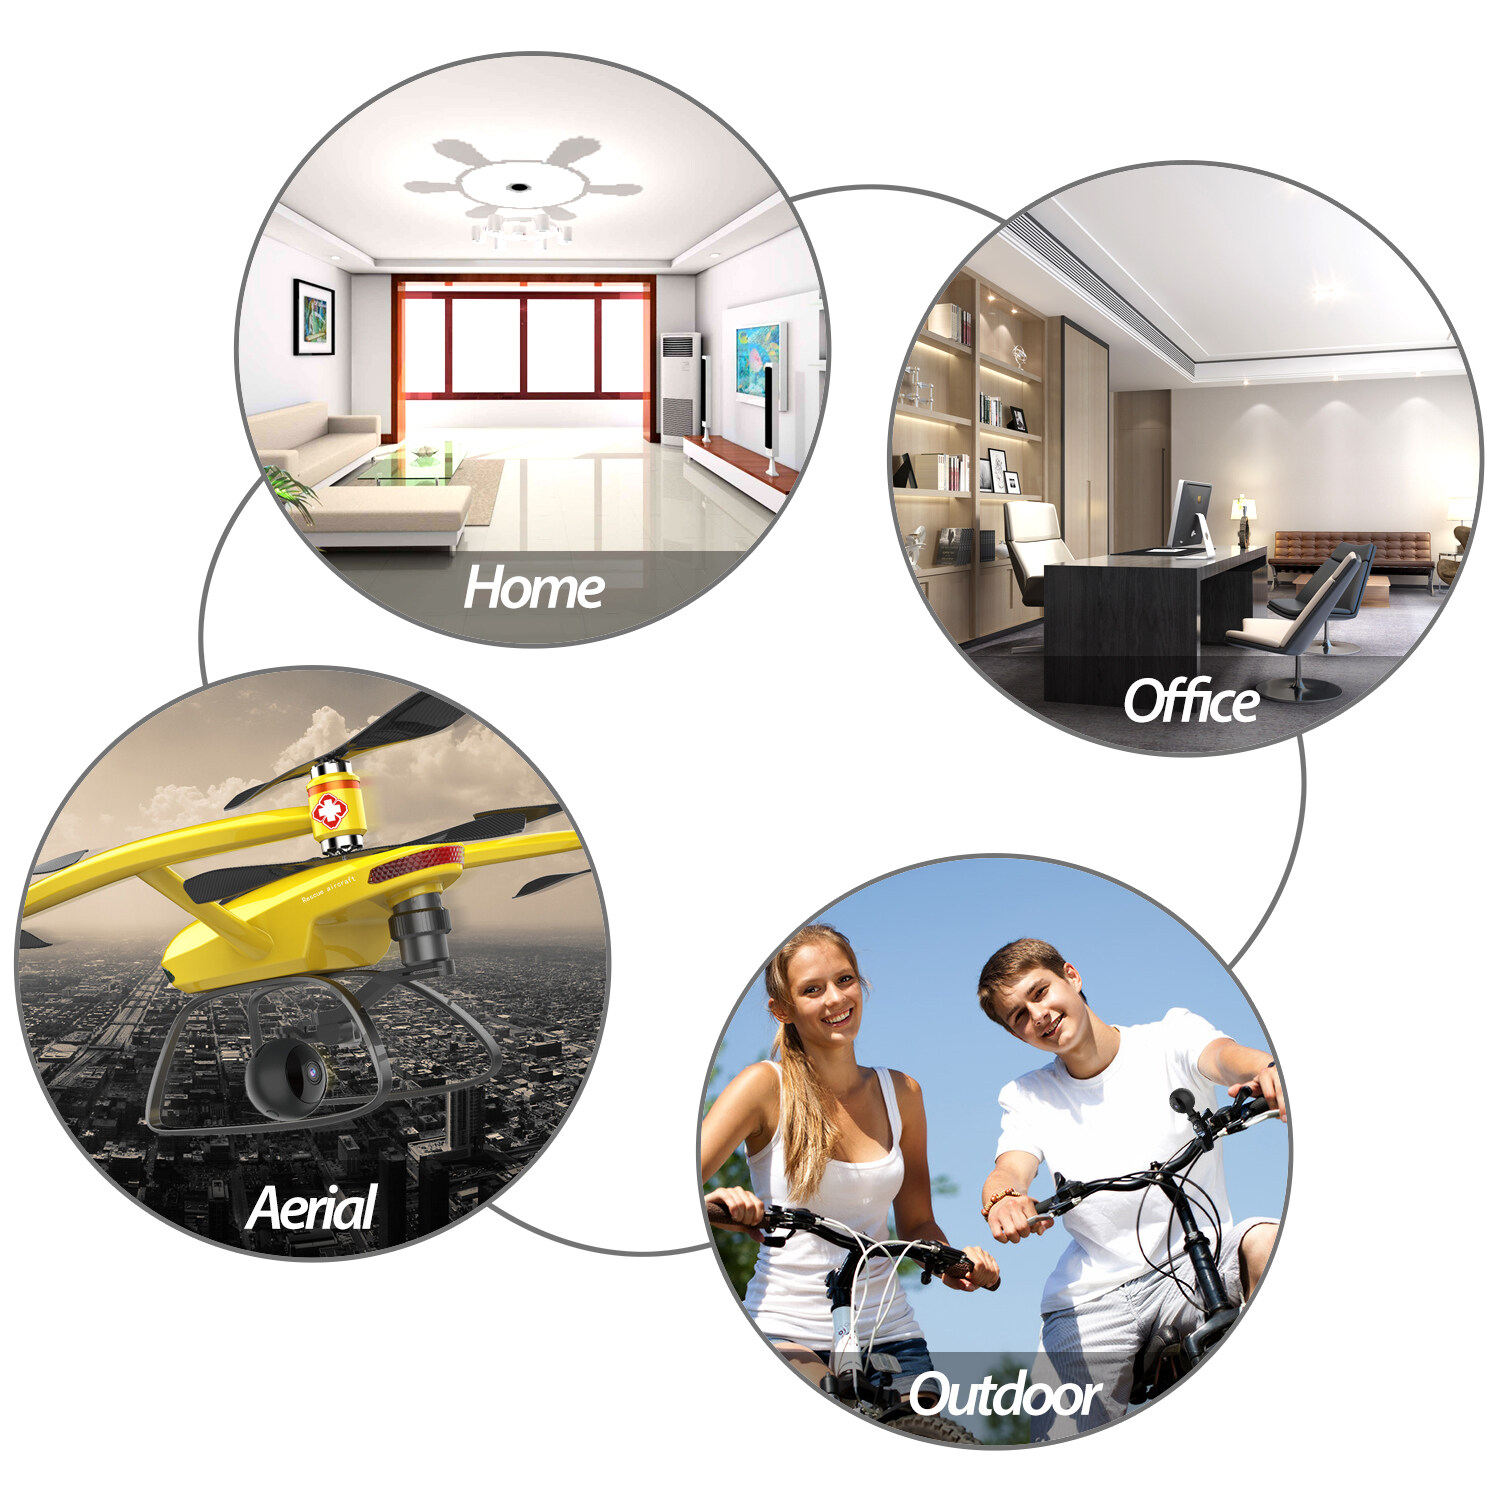 W8 Mini Wifi Camera Hd 1080p Magnet Bracket 150 Degree Wide Angle Night-Vis E3T6 3